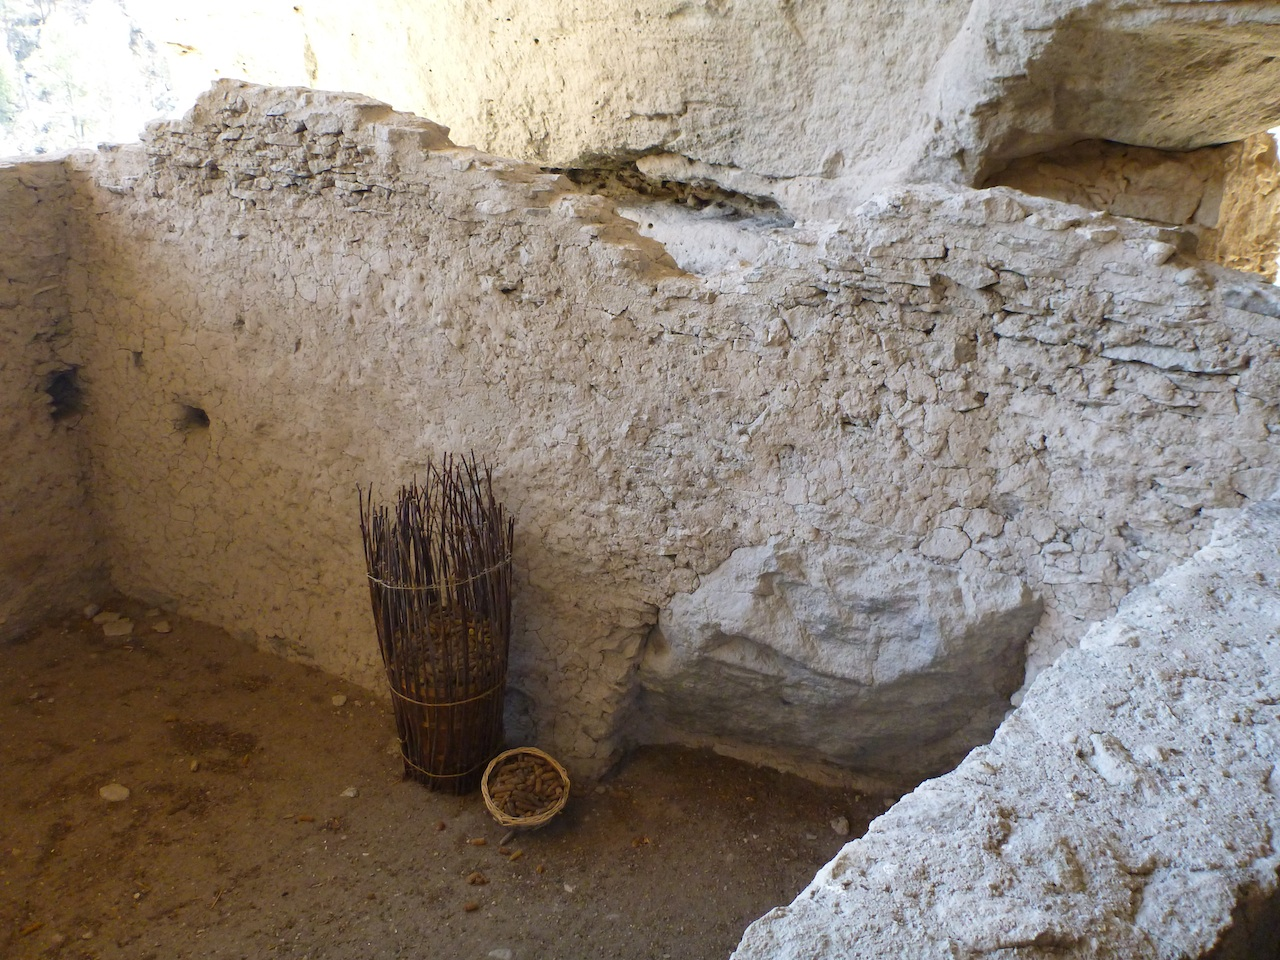 Their Is Actually A Basket That Was Found At The Site Filled With Ancient Corn That The Mogollon's Used To Farm.